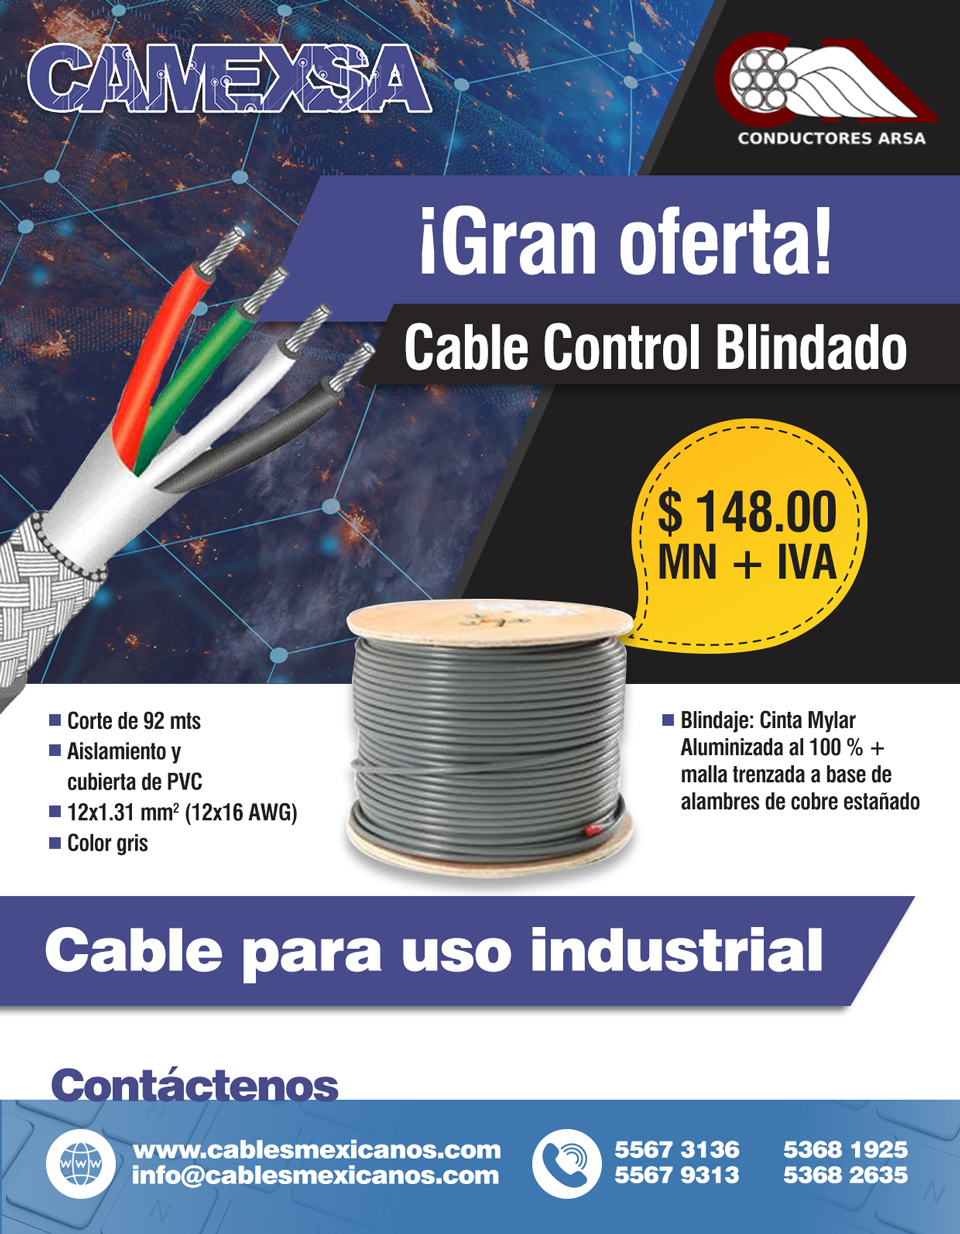 Cable Control Blindado Arsa